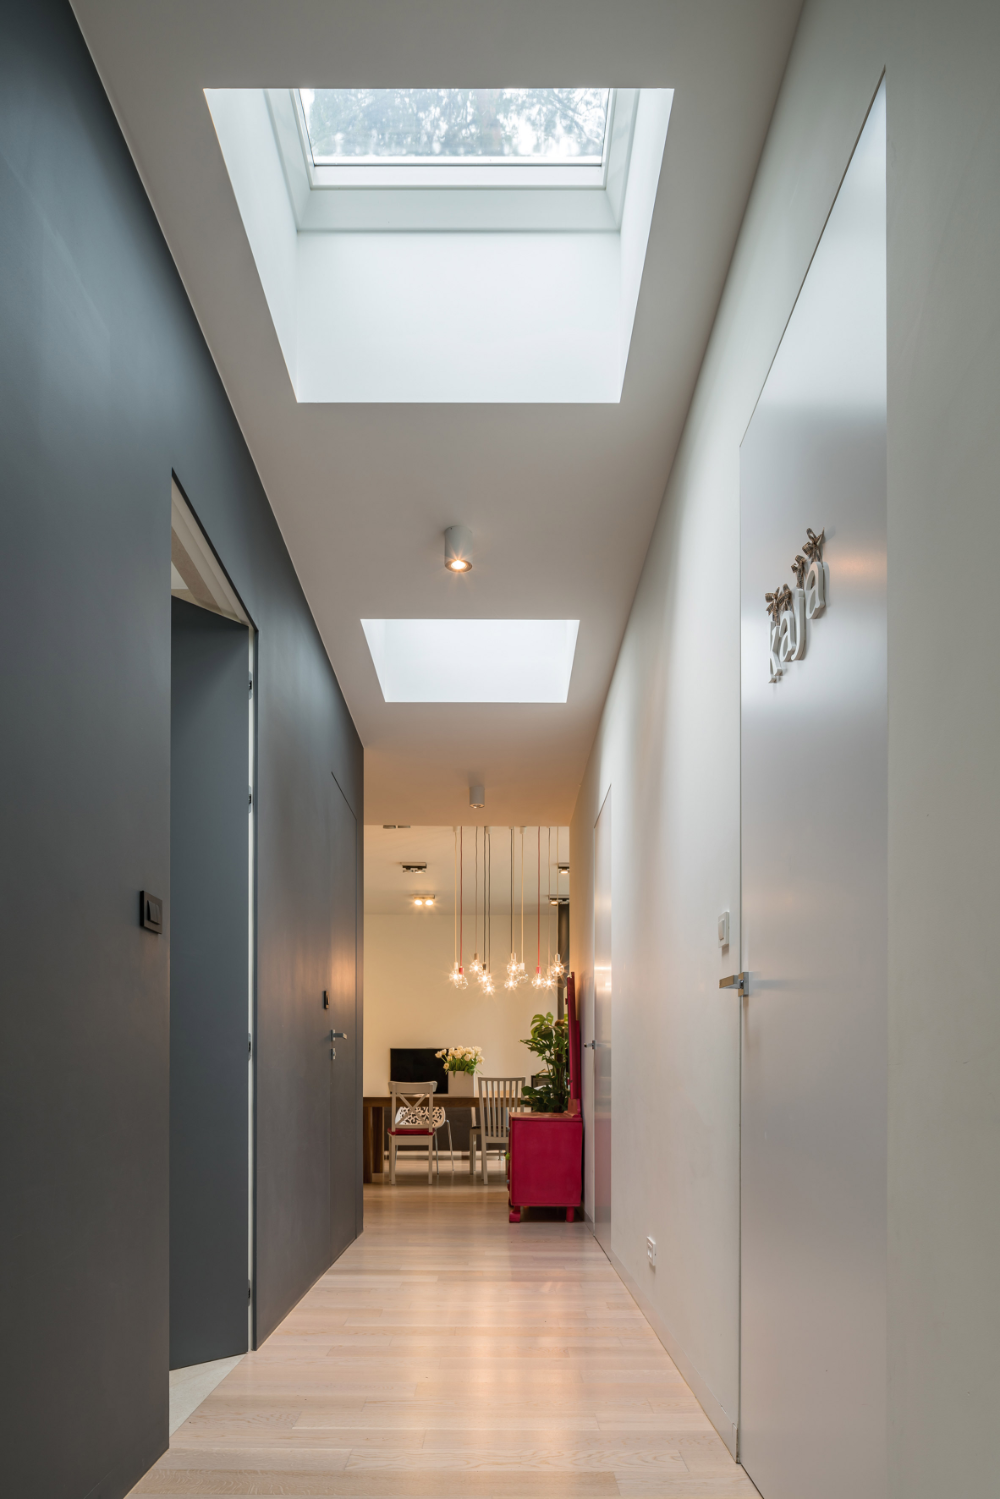 Fakro Launches Skylights Designed Especially For Flat Roofs Skylight Design Flat Roof Lights Flat Roof Skylights